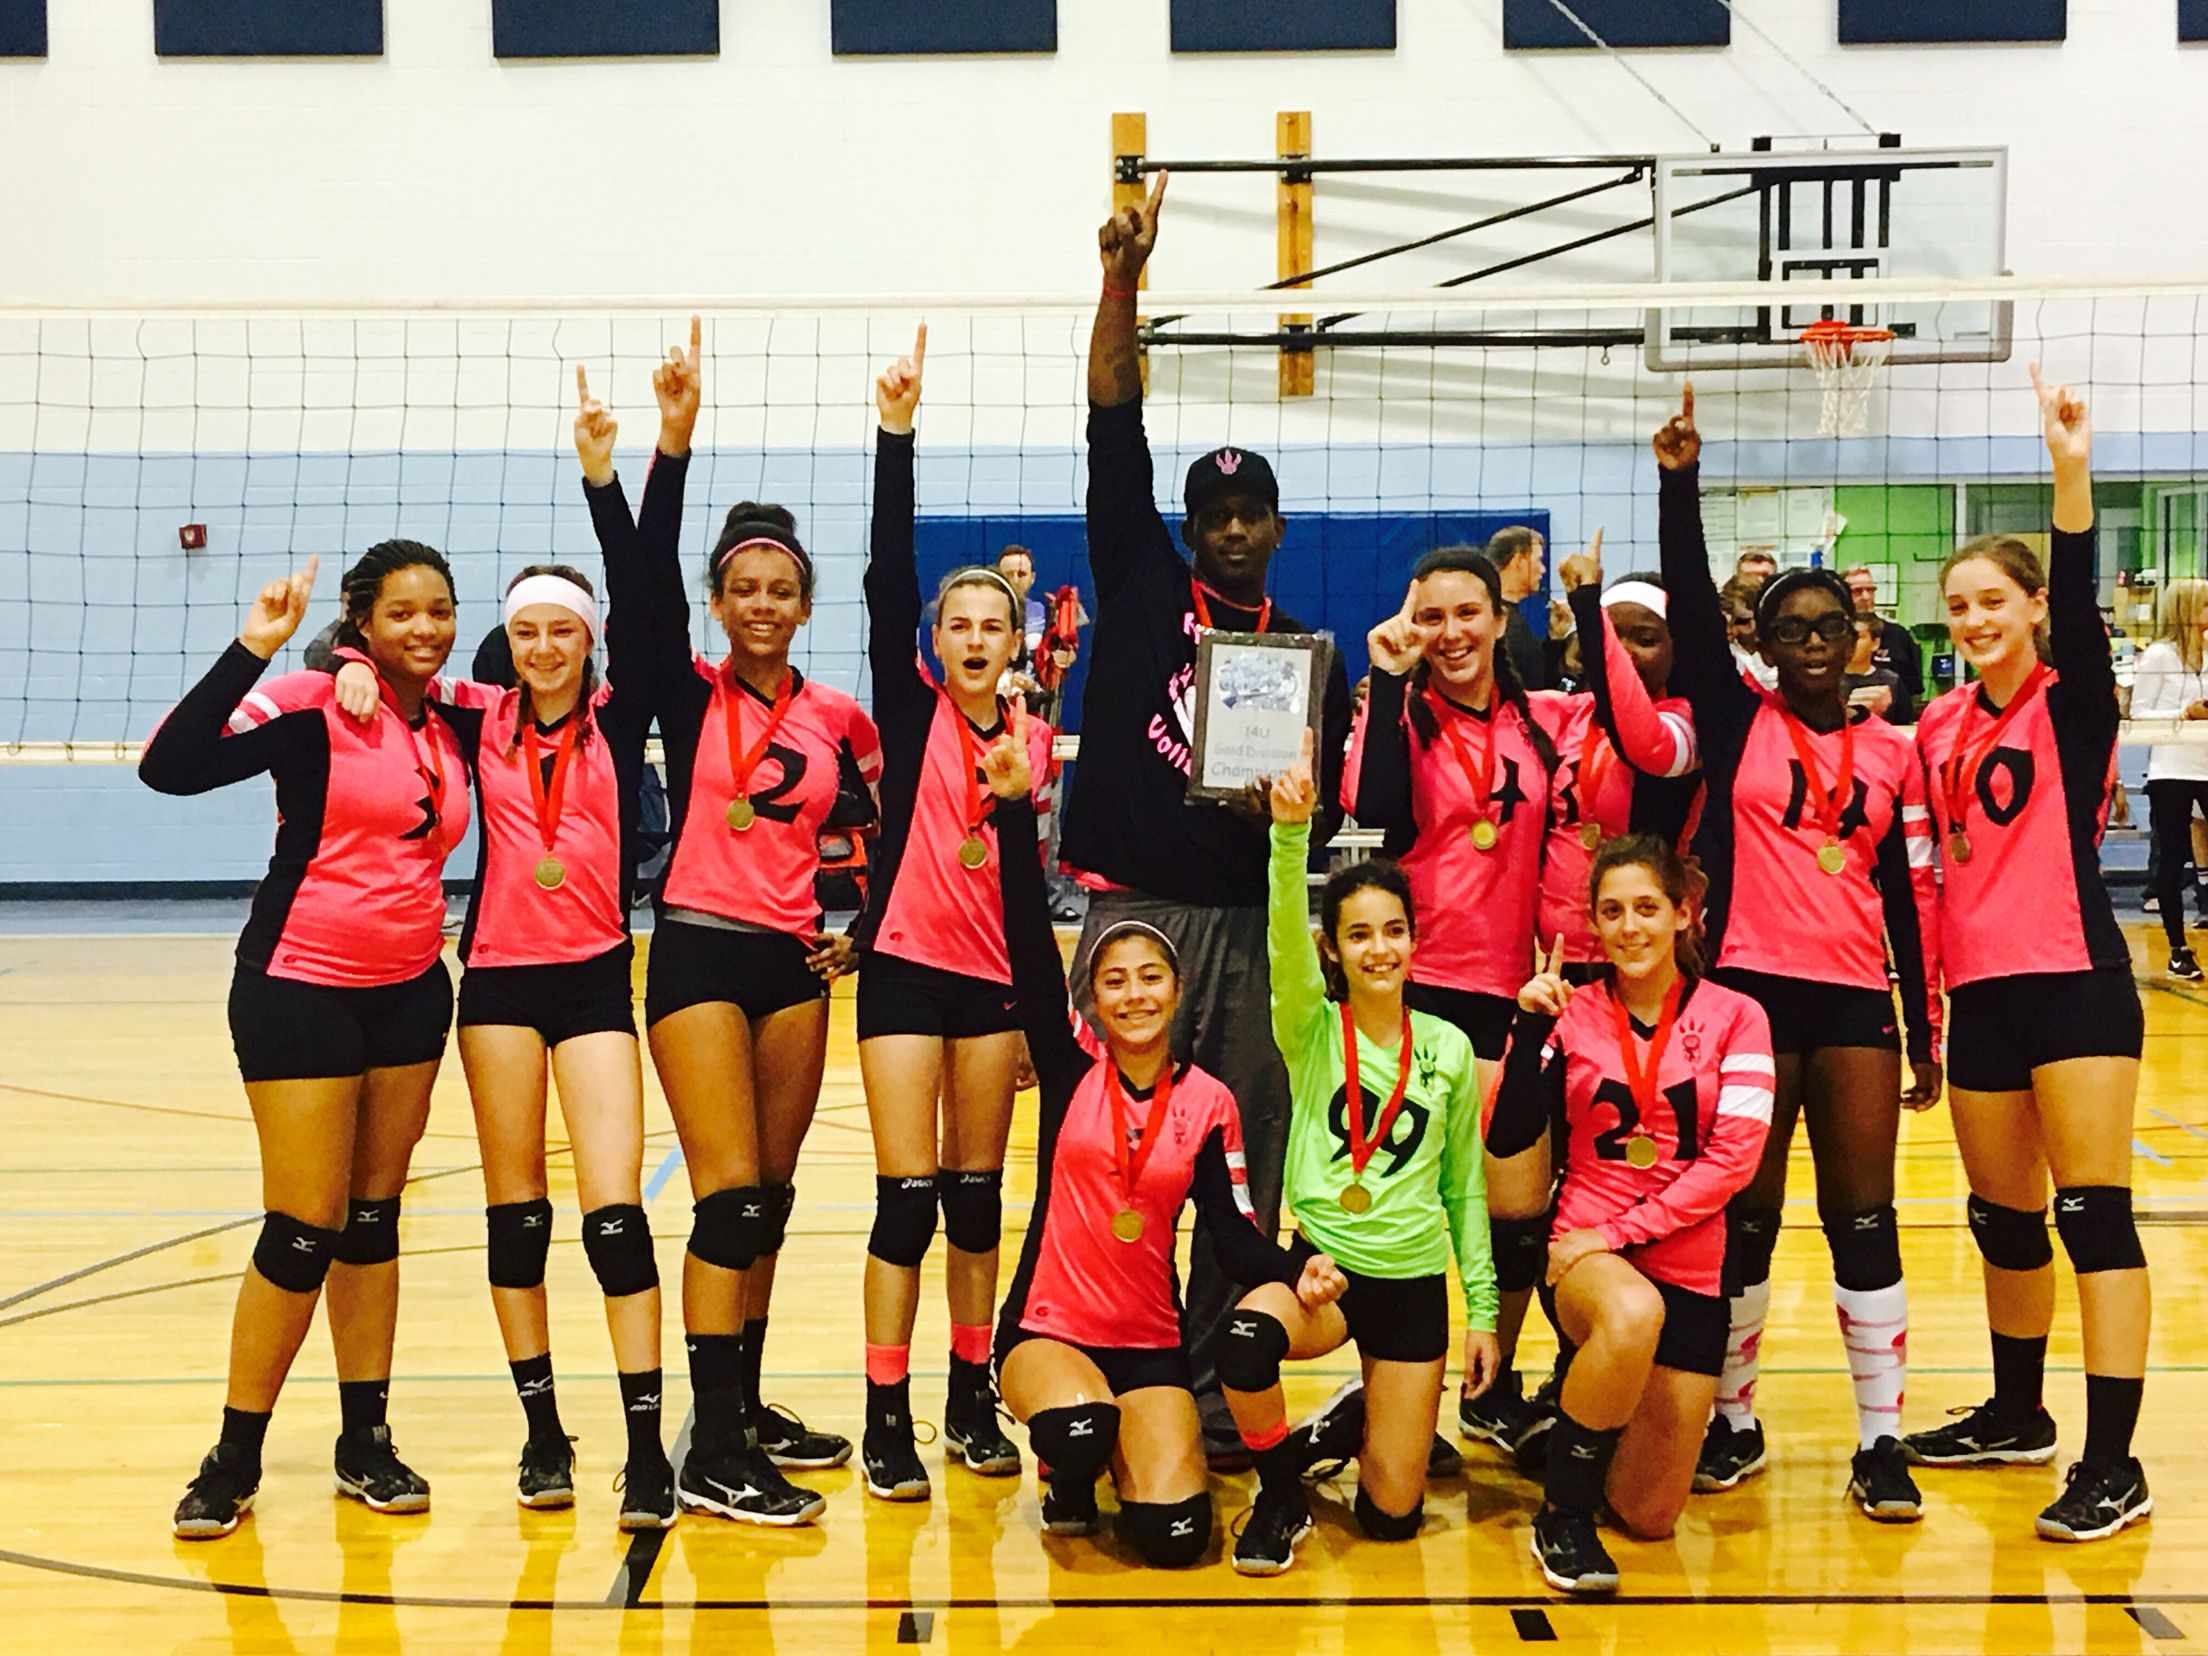 Congratulations To My Taylor And The Tampa Bay Raptors 14 Year Old Volleyball Team For Winning A Gold Medal In Their First Volleyball Team Volleyball Tampa Bay